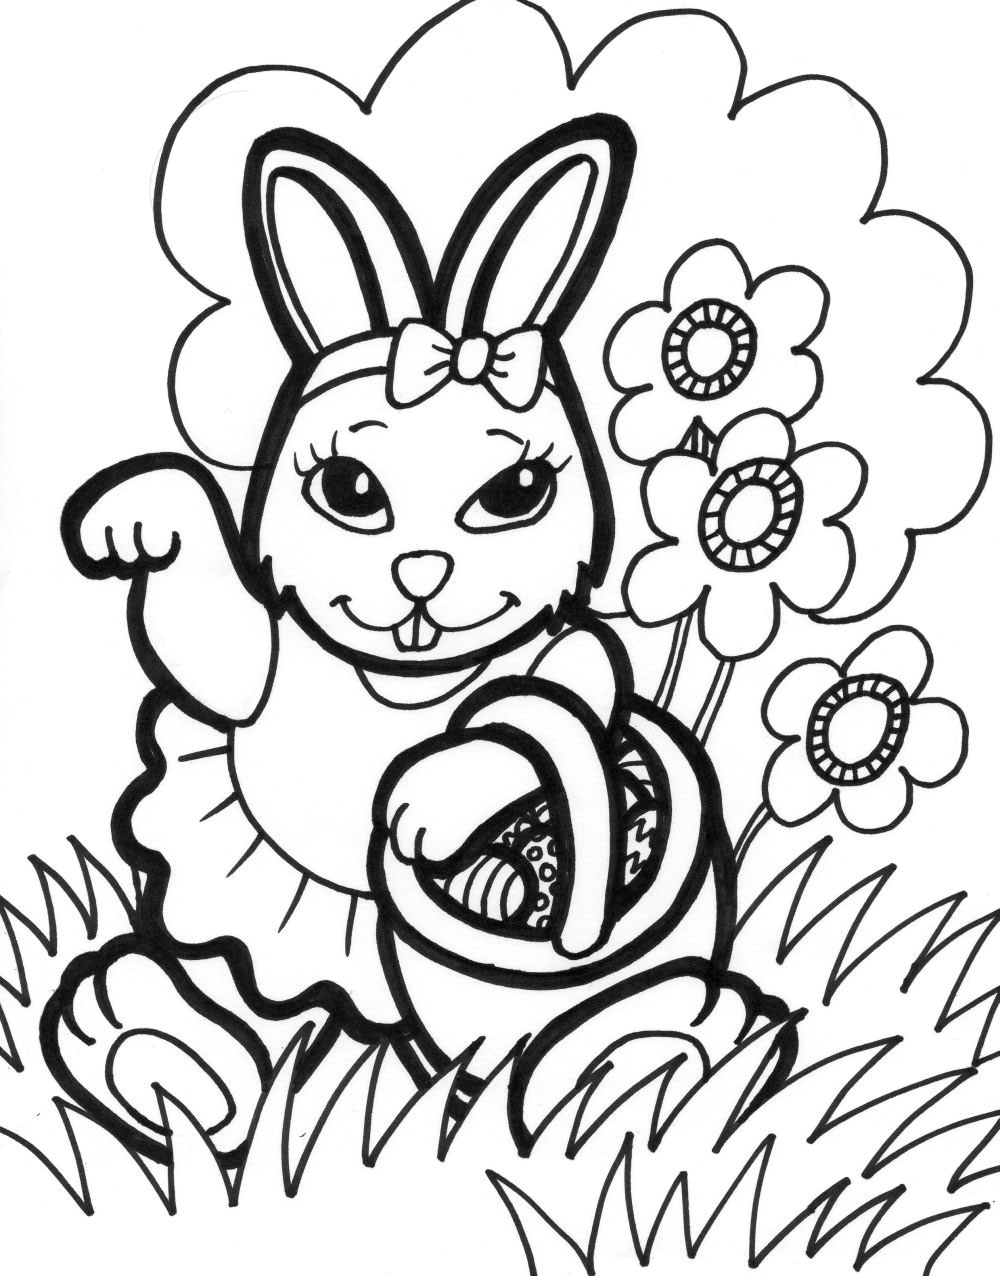 Coloring Pages Easter Free Printable Easter Bunny Coloring Pages For Kids